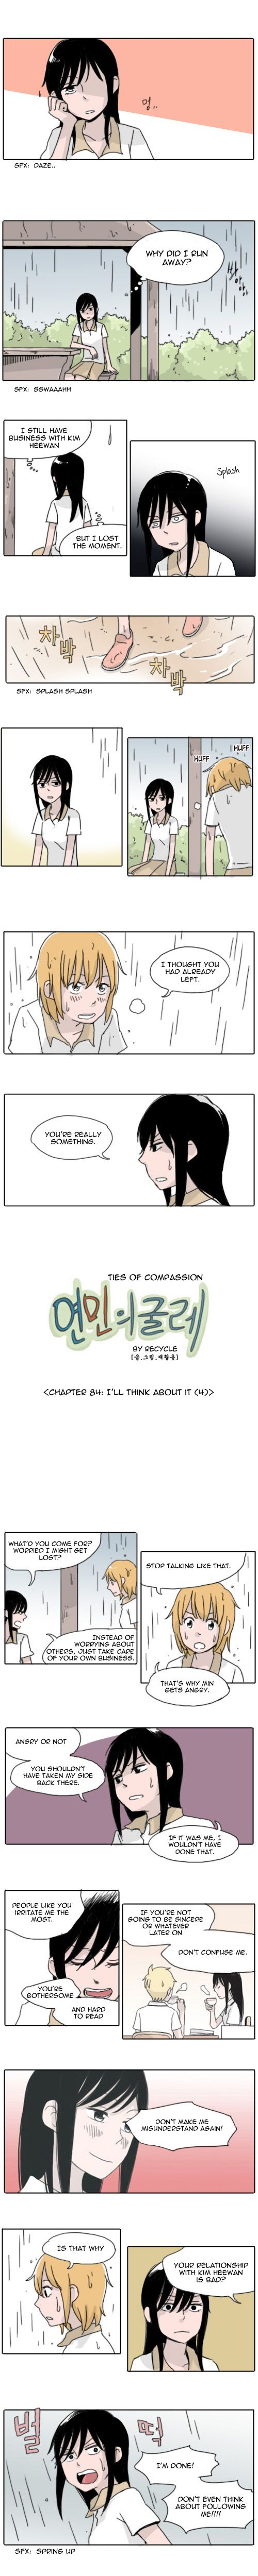 Ties of Compassion 84 Page 1